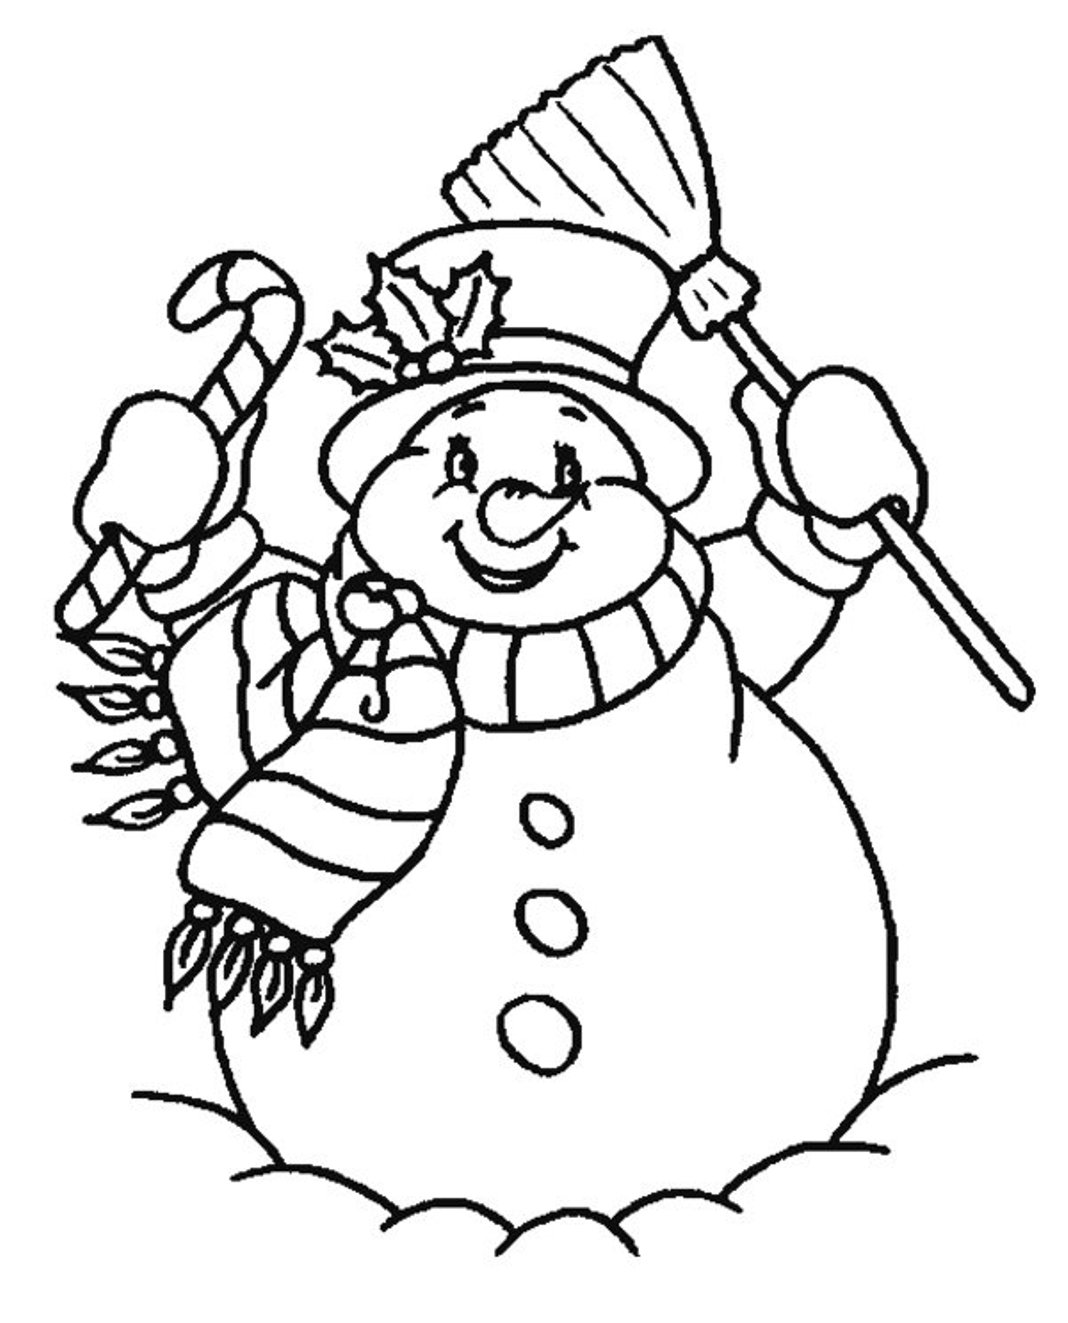 snowman coloring page coloring pages christmas snowman coloring pages free and snowman page coloring 1 1